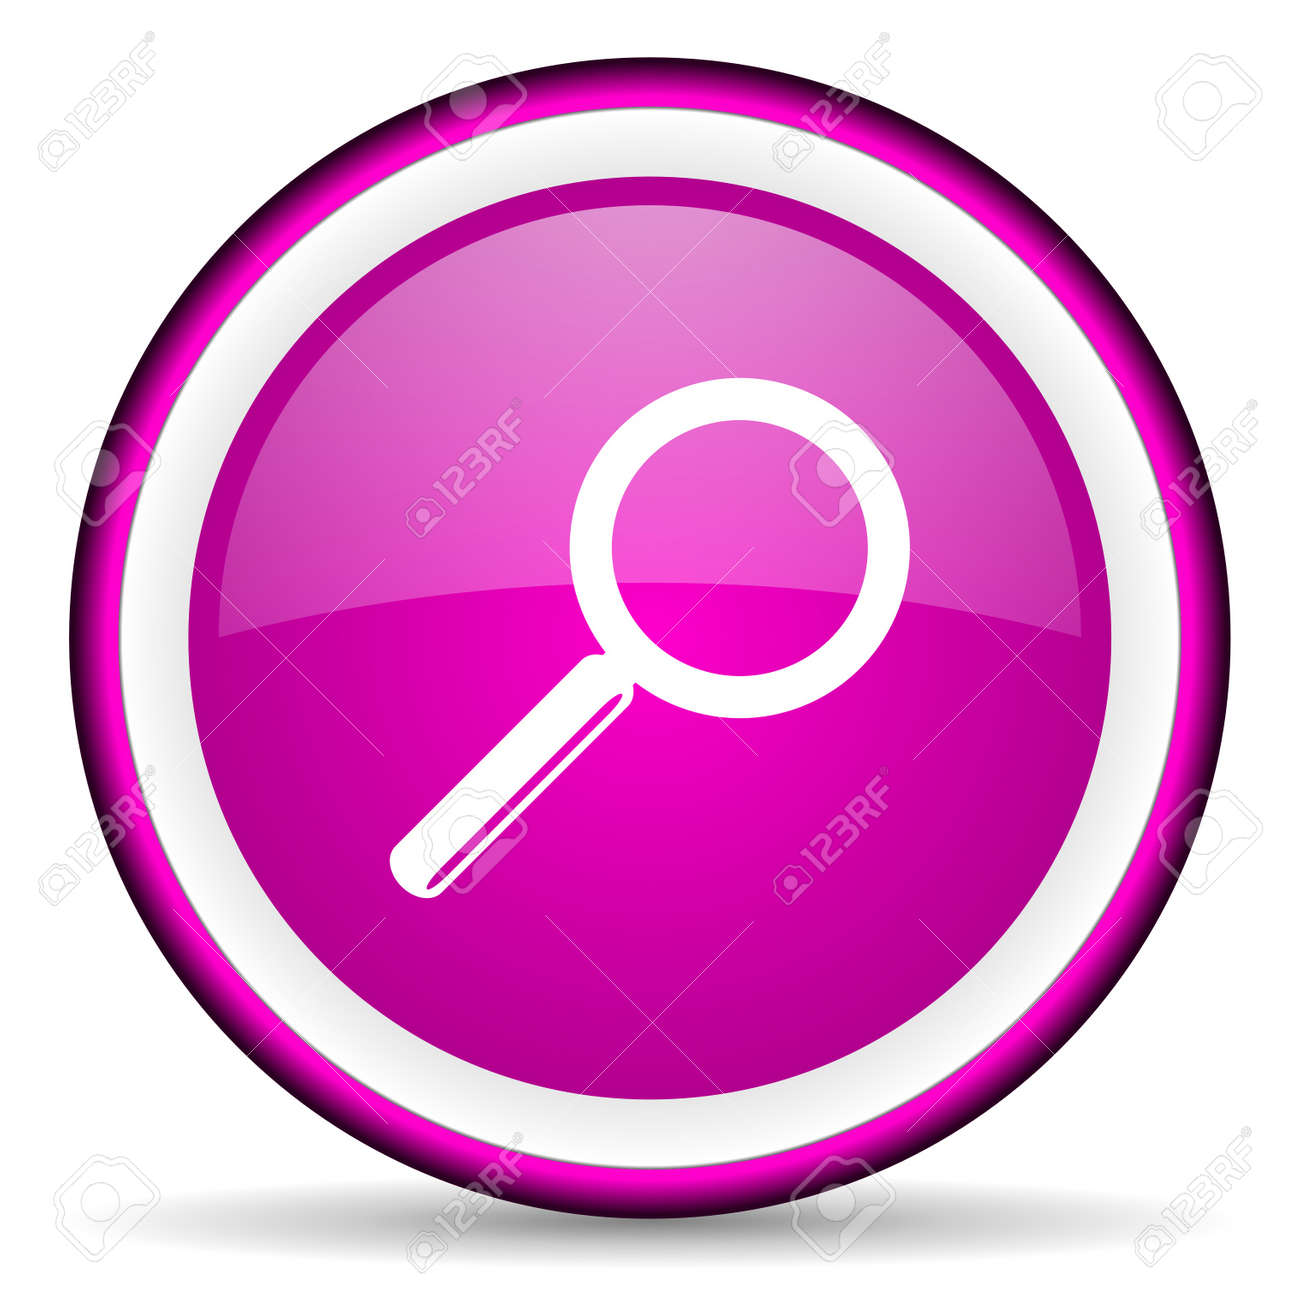 search violet glossy icon on white background Stock Photo - 16680589